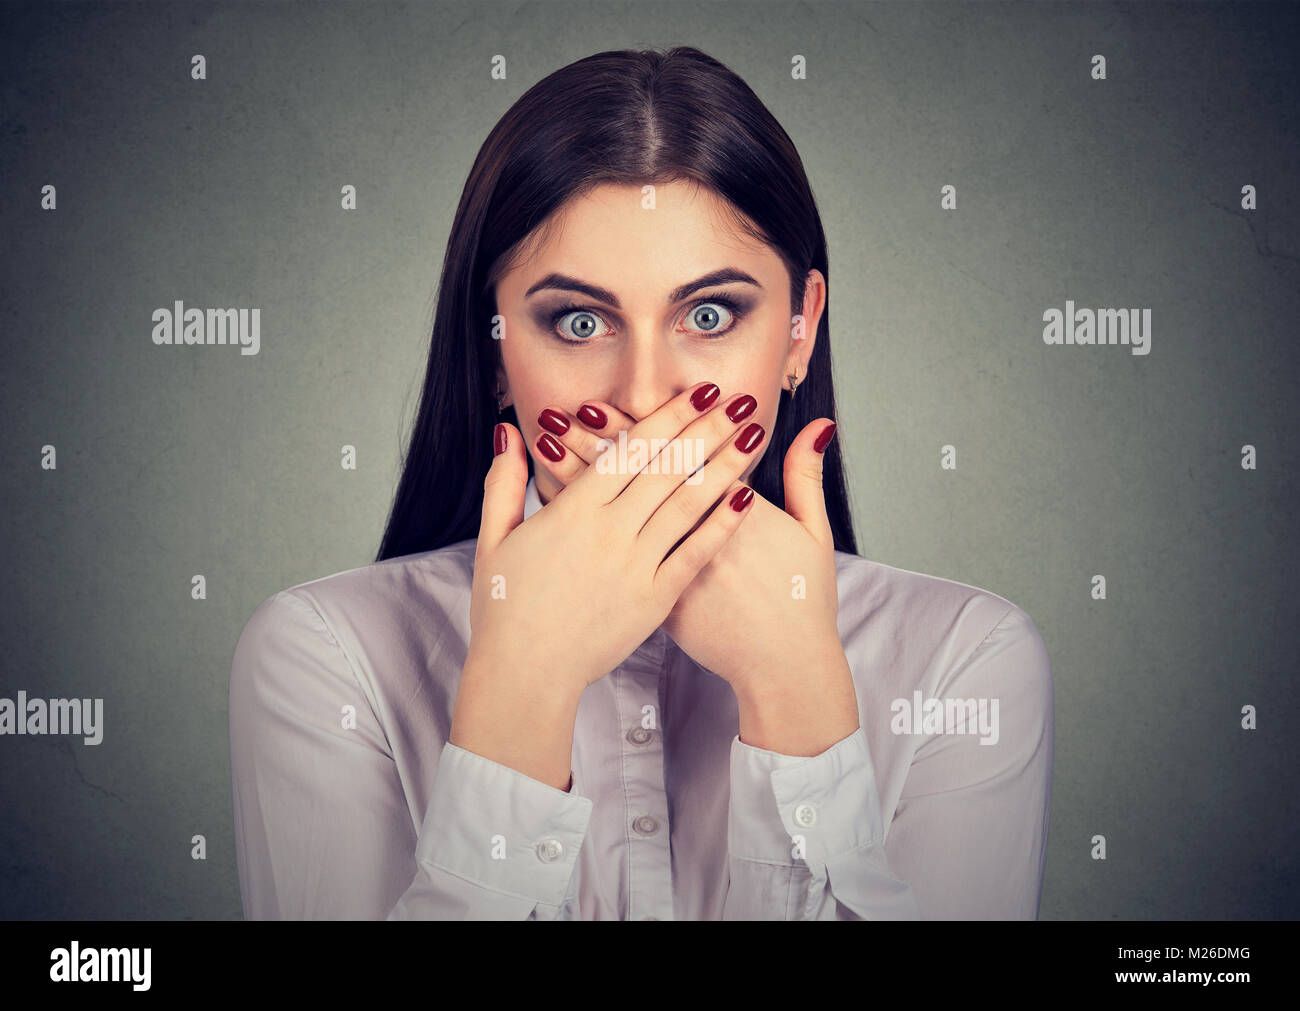 Young woman covering mouth looking terrified because of prohibition to talk. - Stock Image